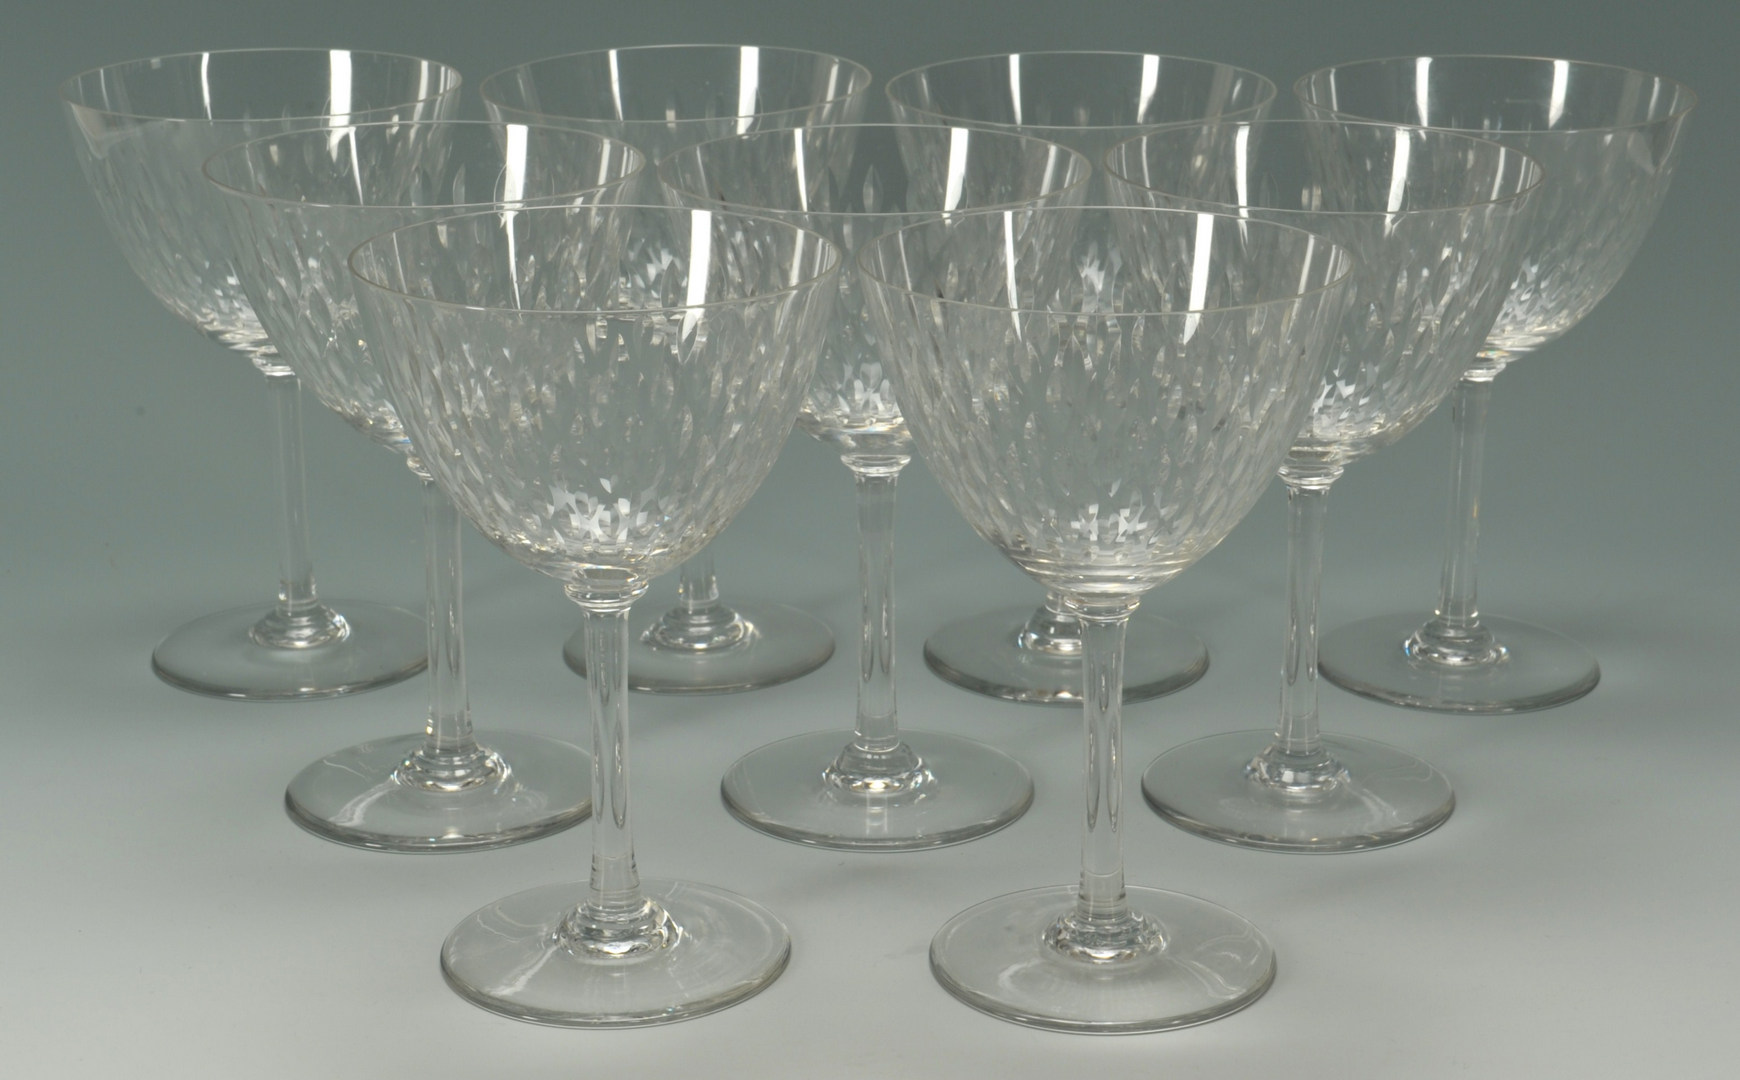 Lot 265: Baccarat Crystal water goblets, Paris pattern, 9 t